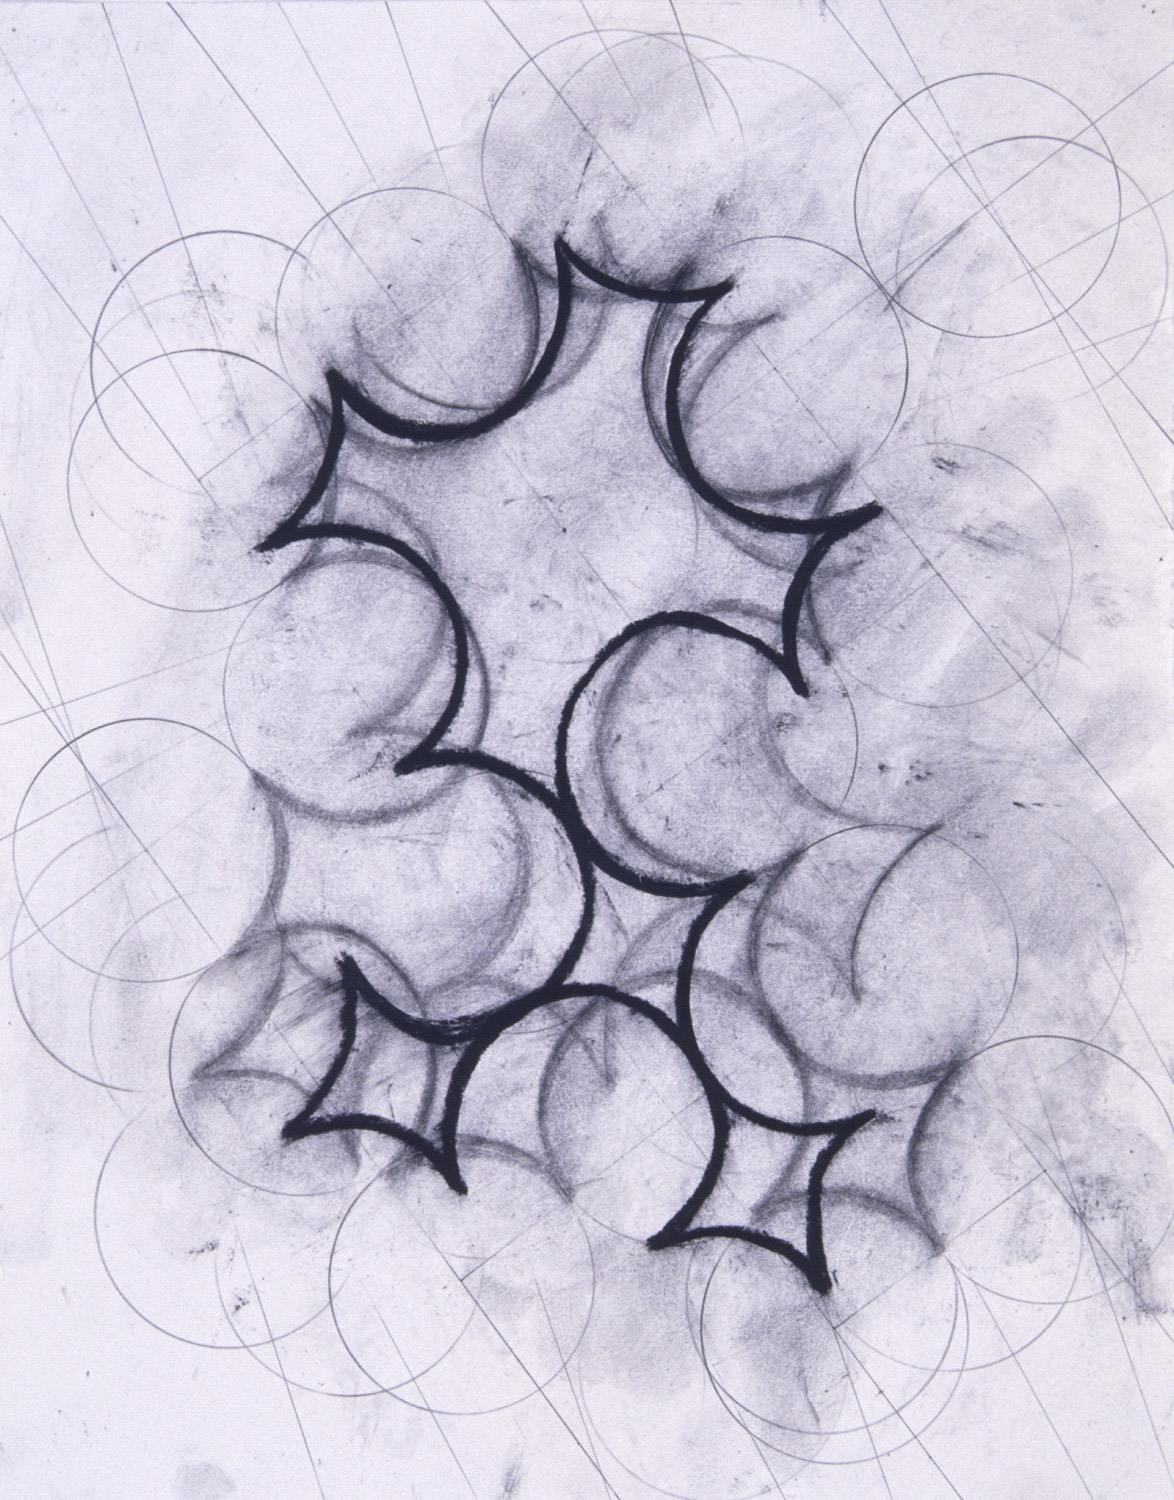 """9/20 #2, 2000, 11x14"""", charcoal & wax on paper"""